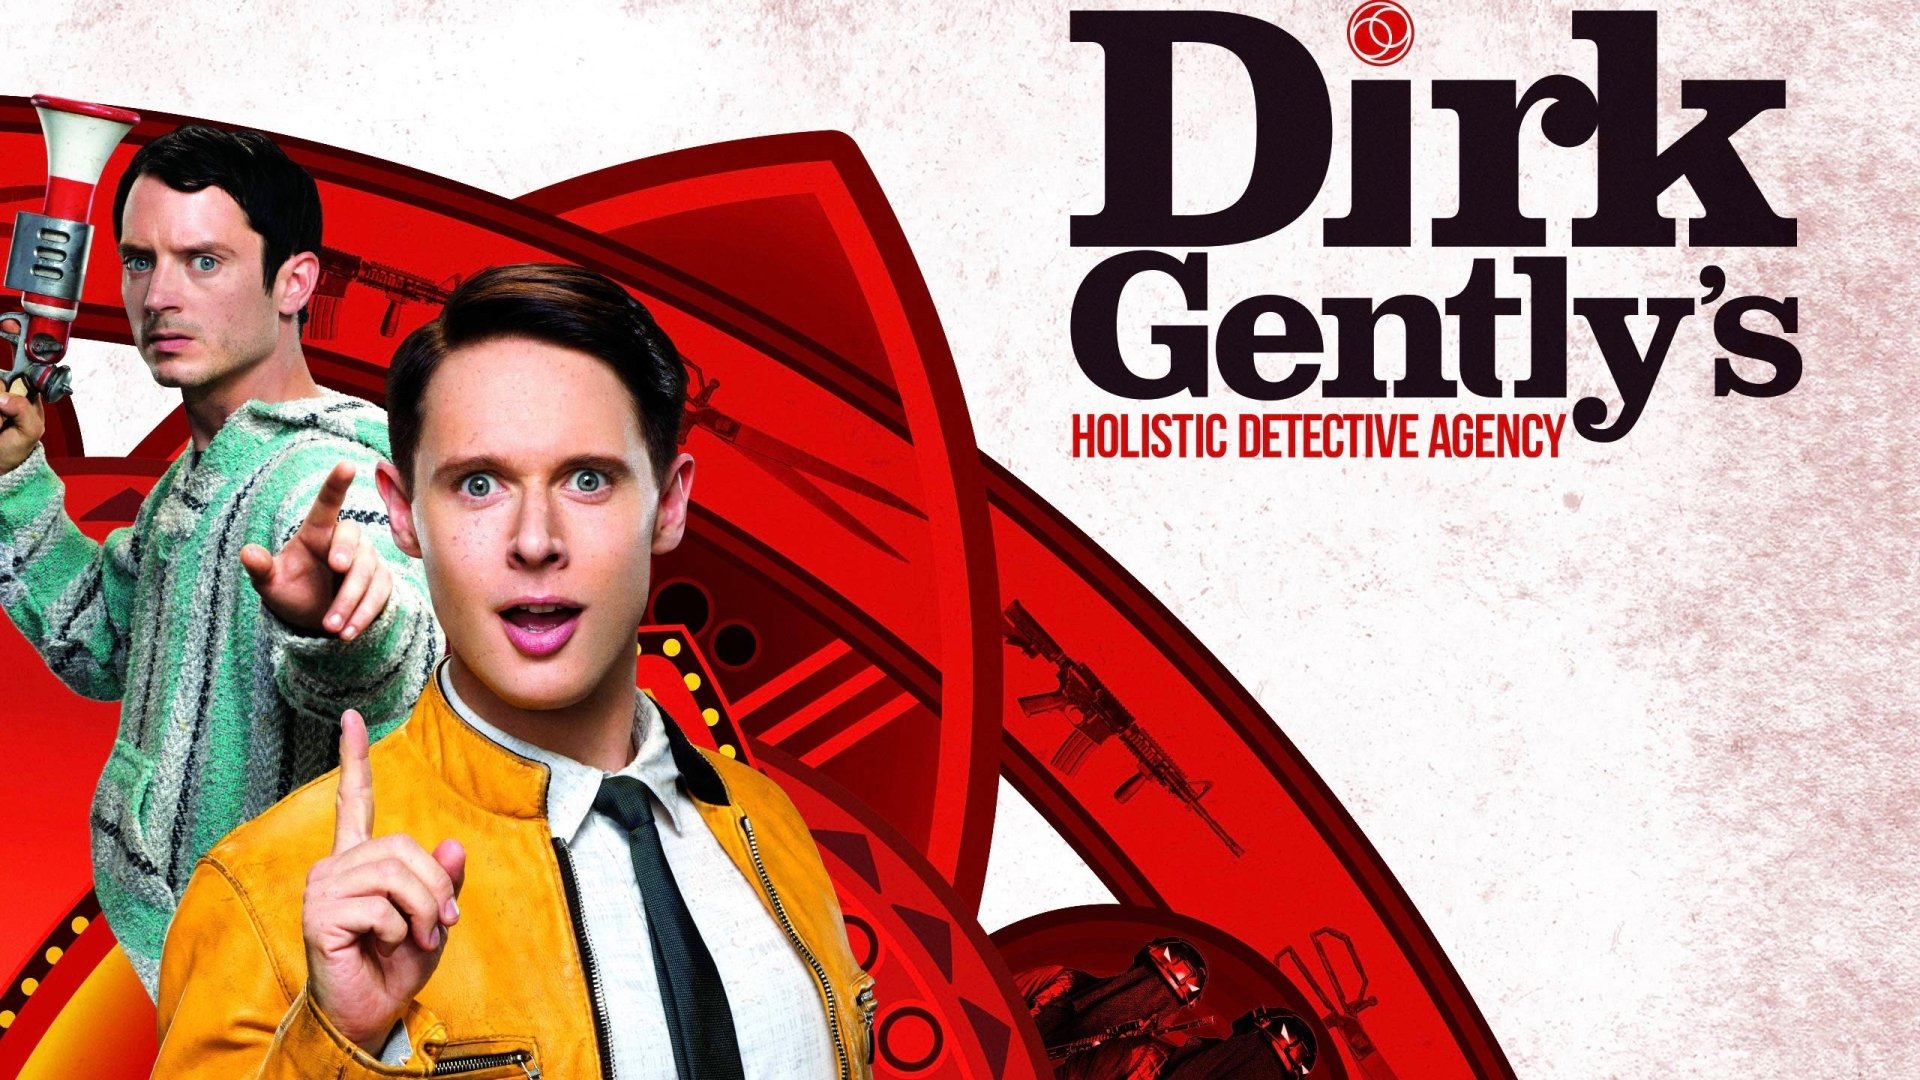 2 Dirk Gently S Holistic Detective Agency Hd Wallpapers